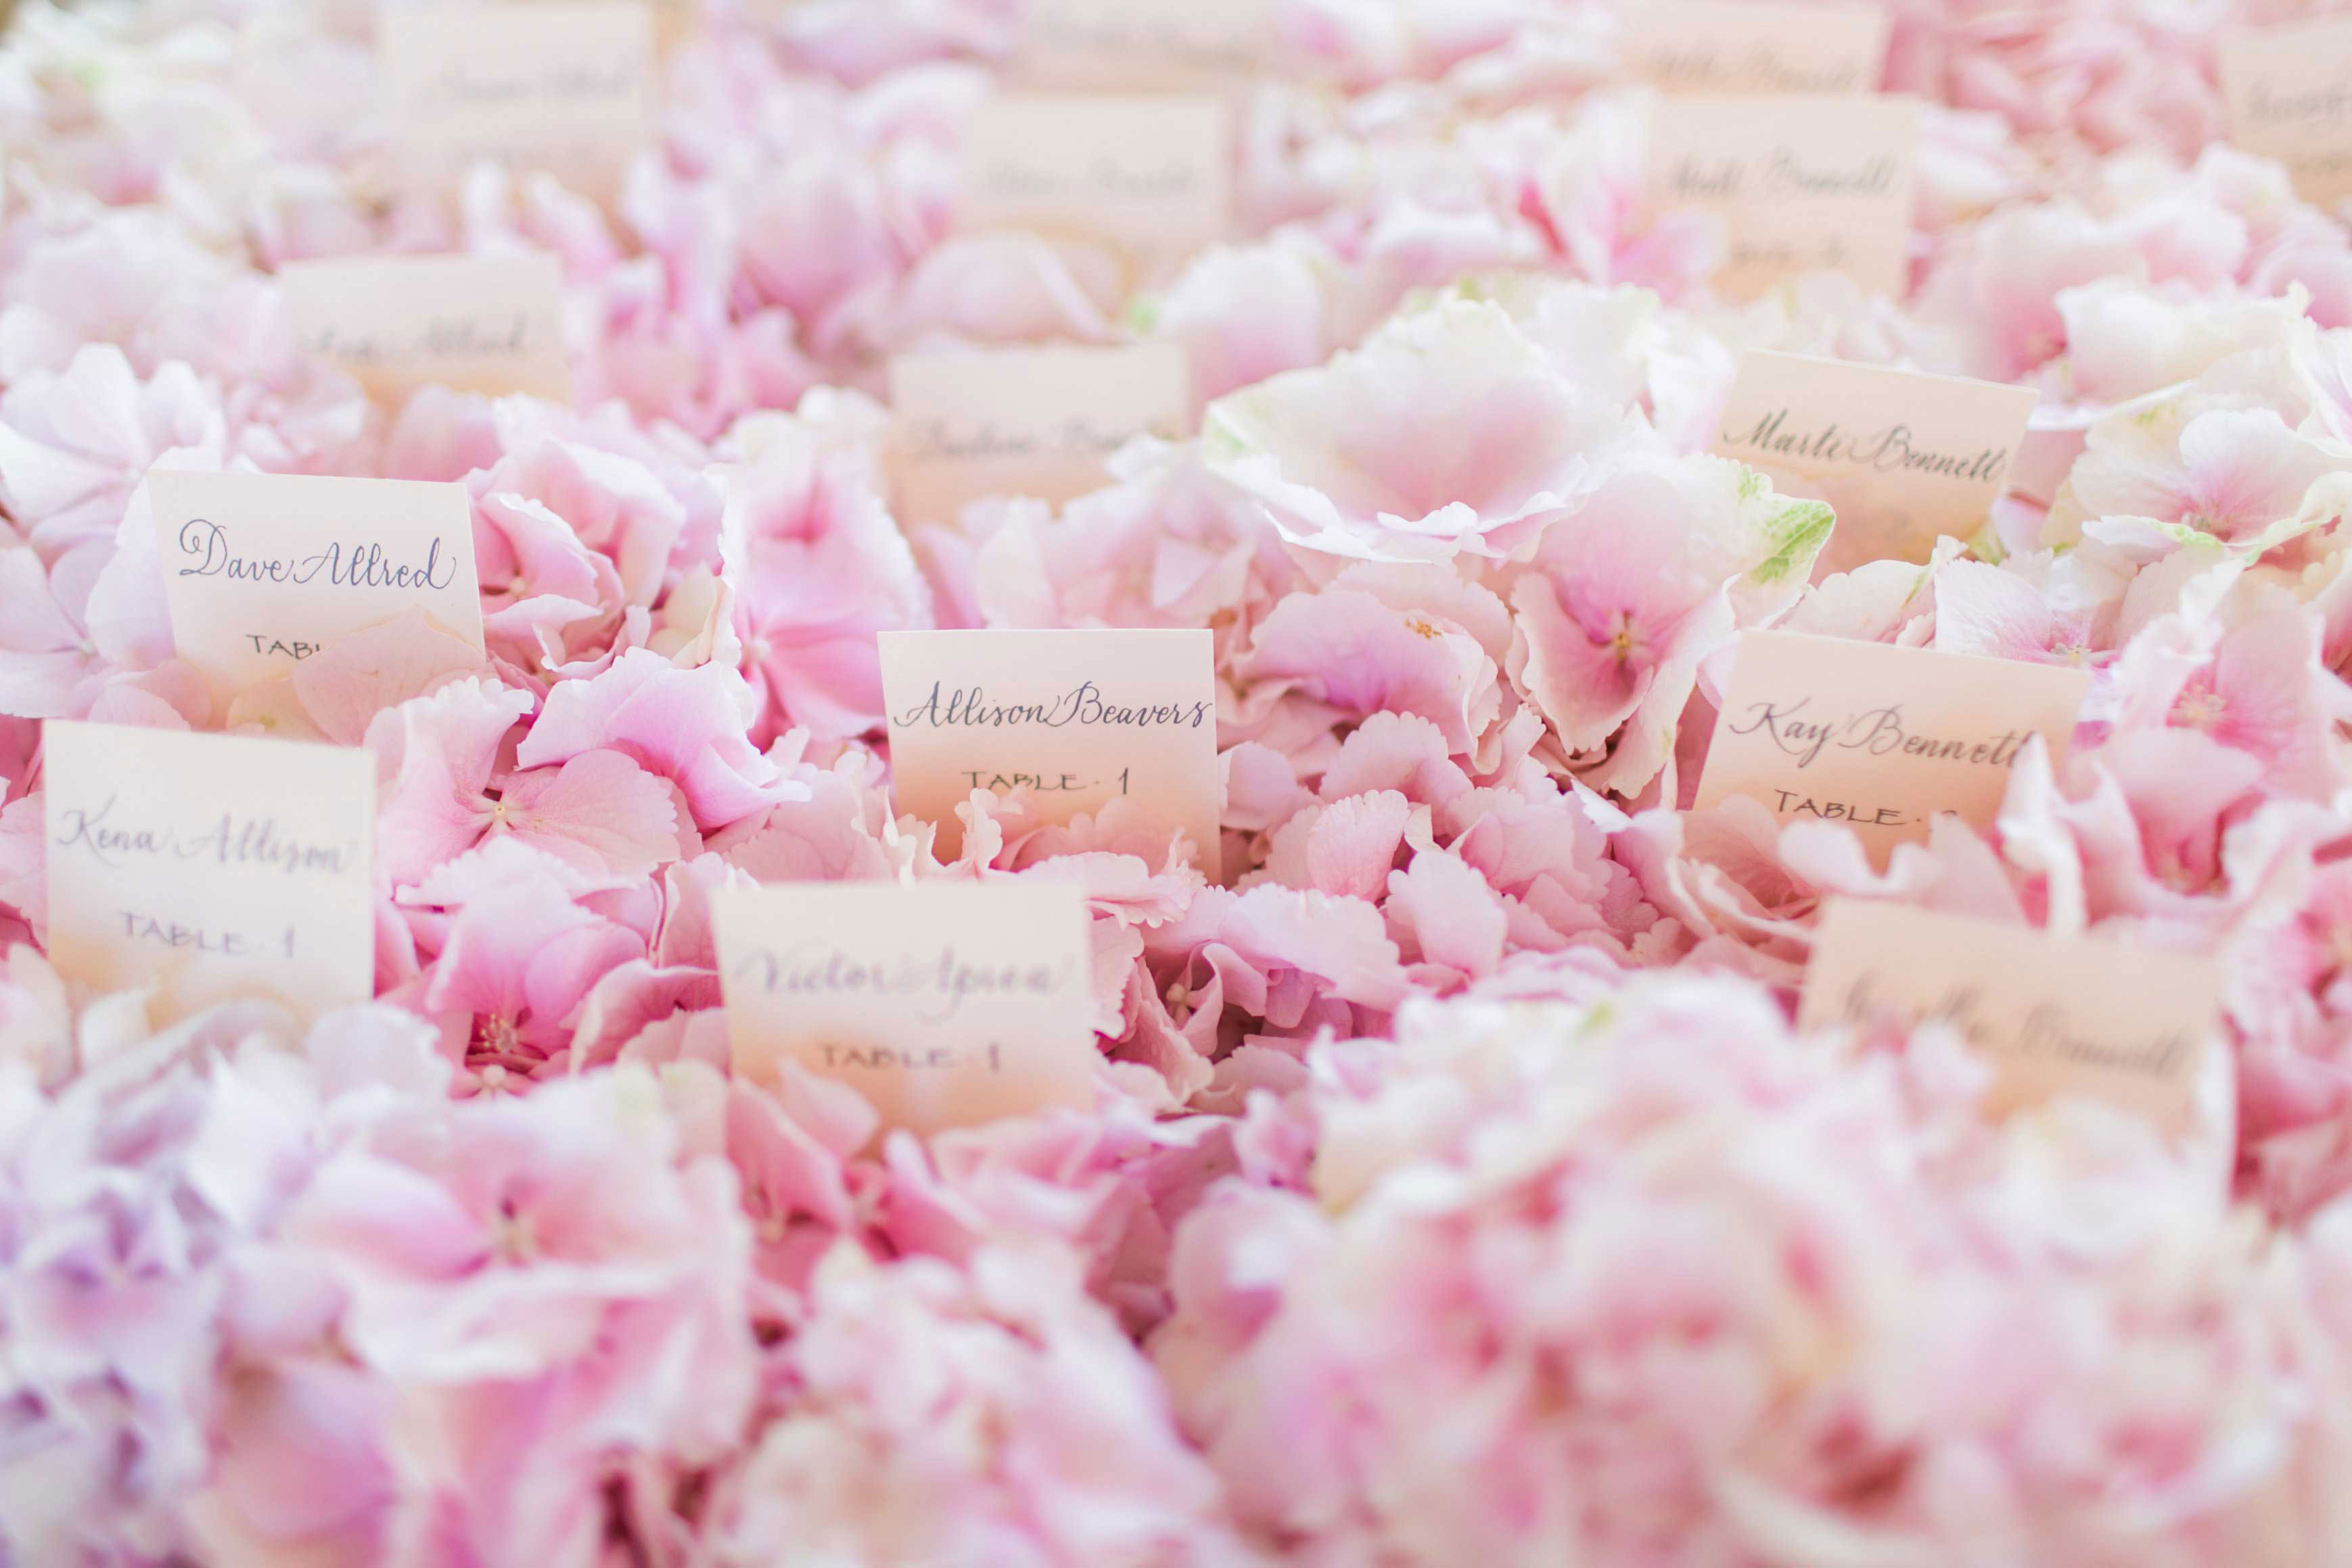 Escort cards on bed of pink peony flowers